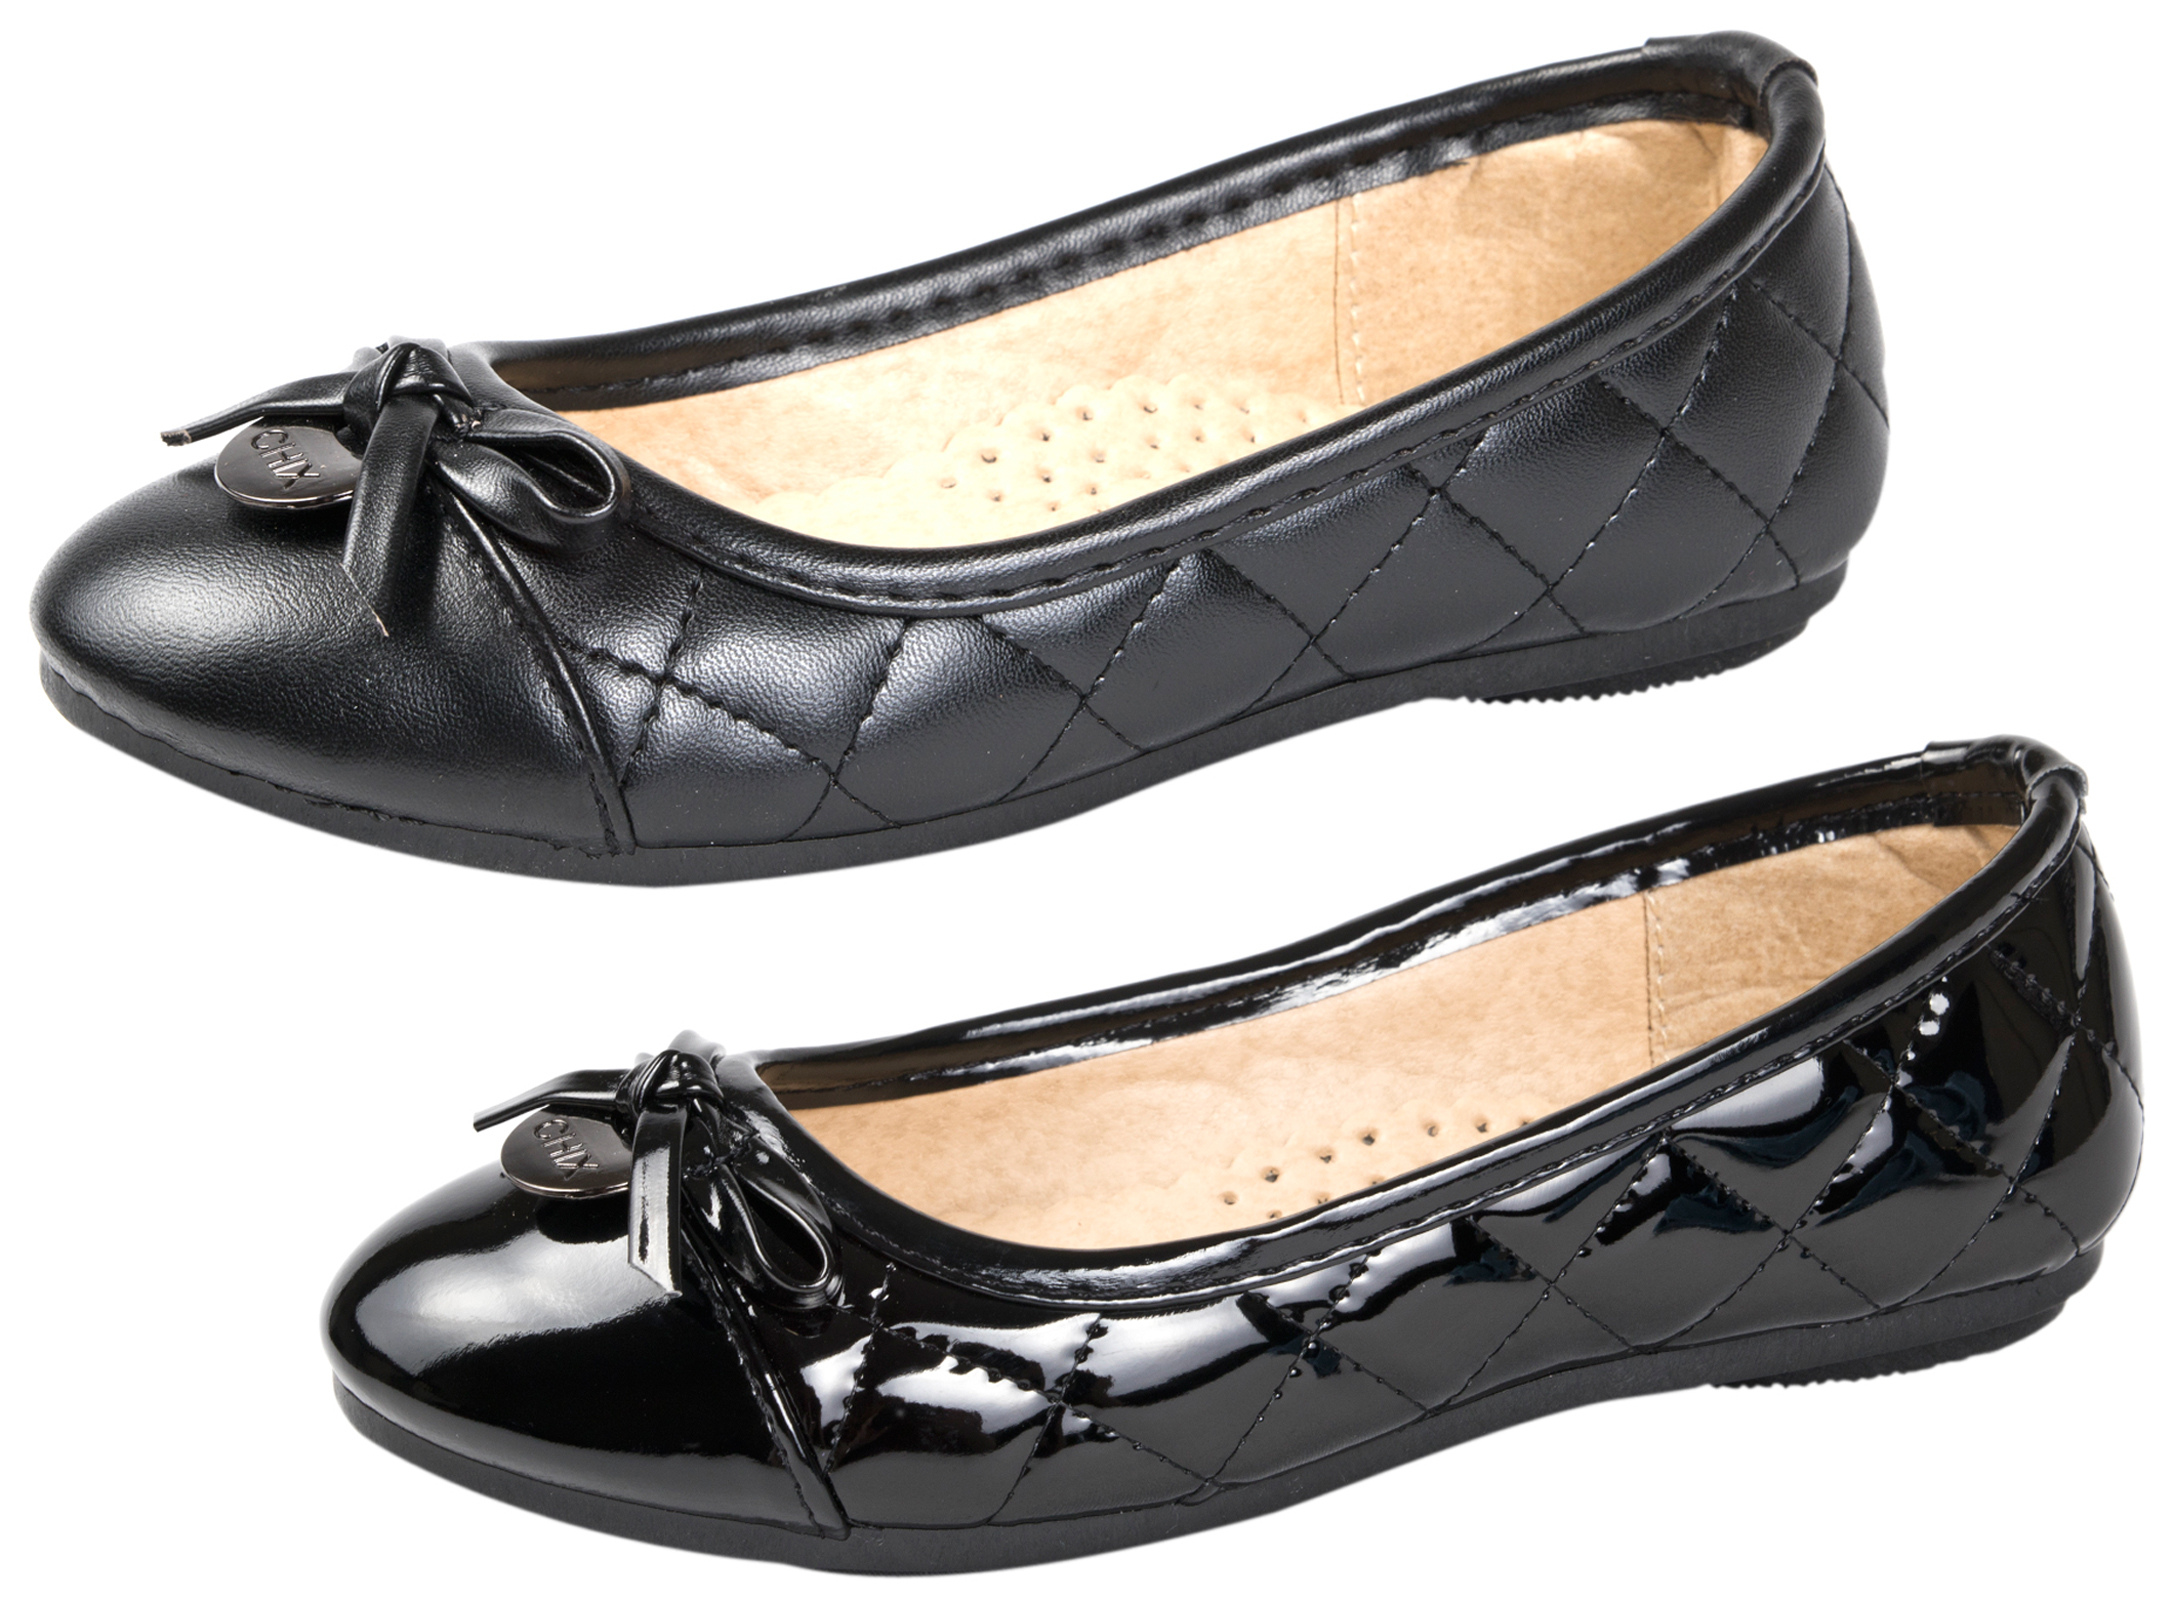 GIRLS KIDS BLACK SLIP-ON SCHOOL TOUCH-STRAP SMART DOLLY BALLET SHOES PUMPS 5-1